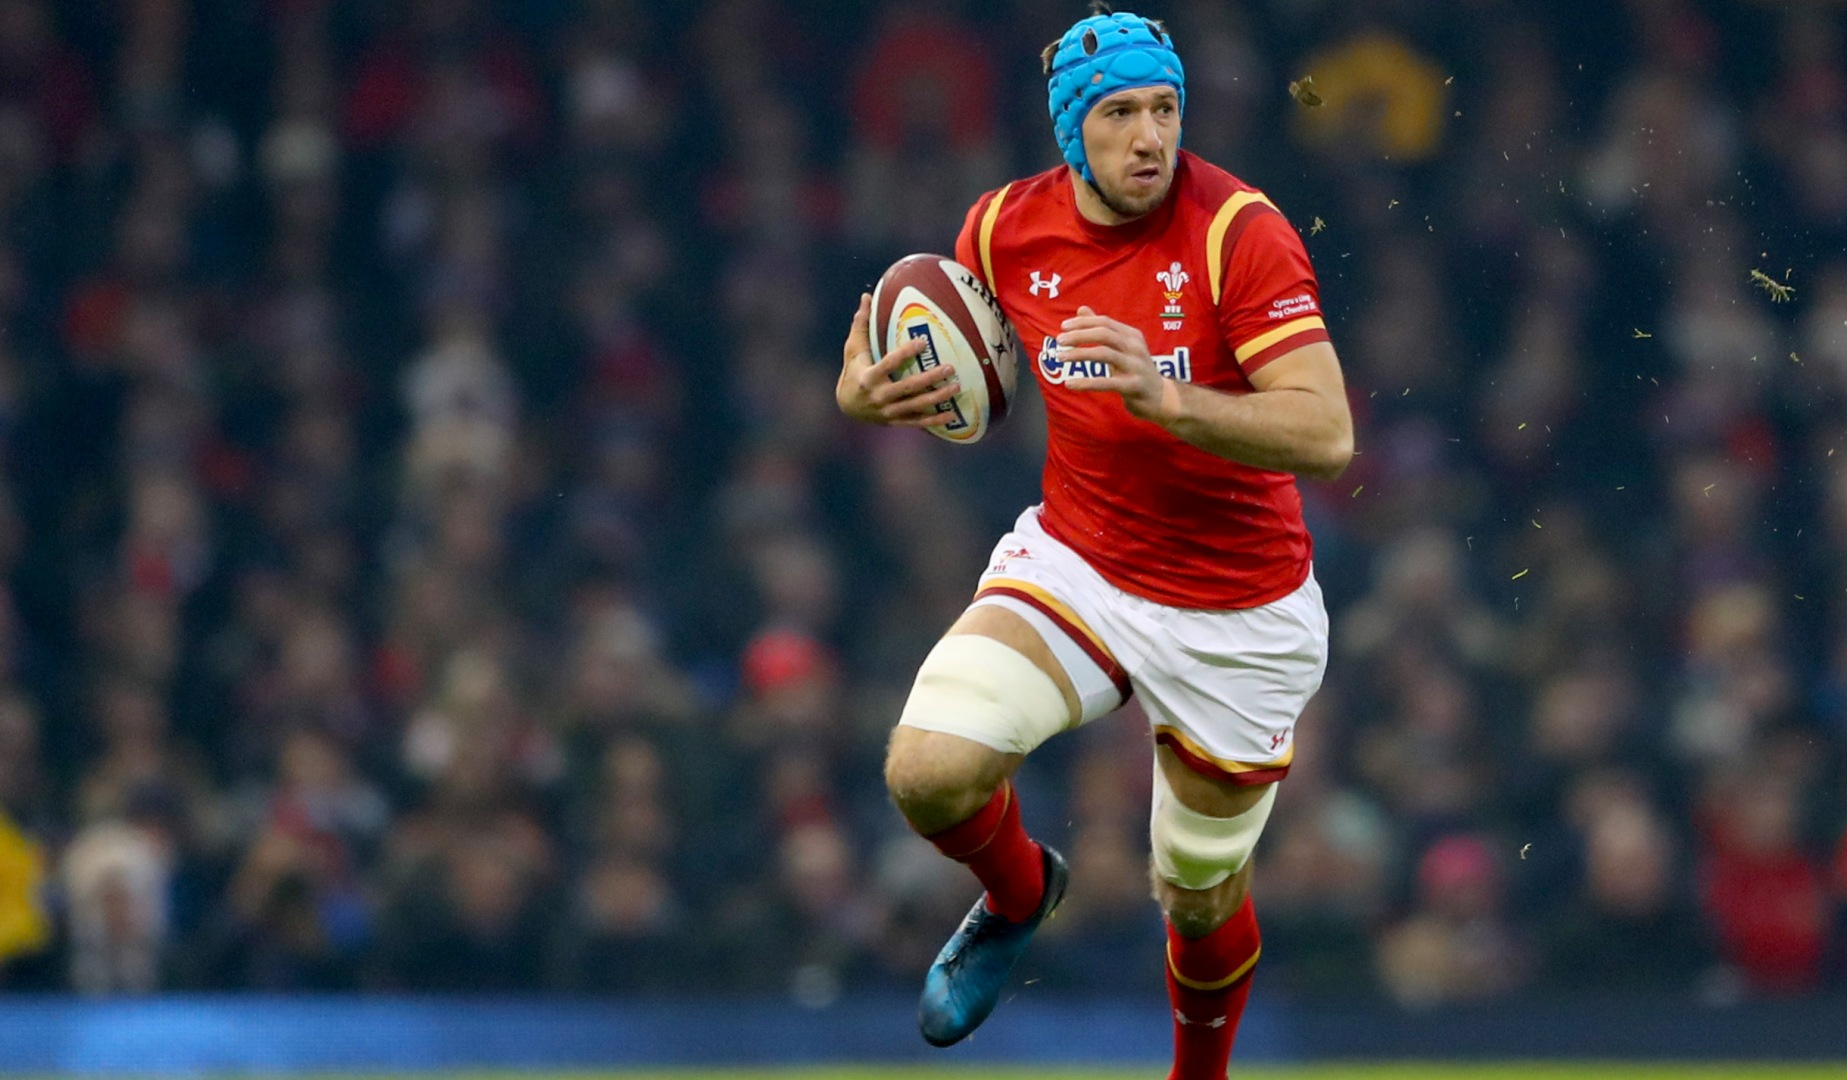 Tipuric: Wales are better than their results show